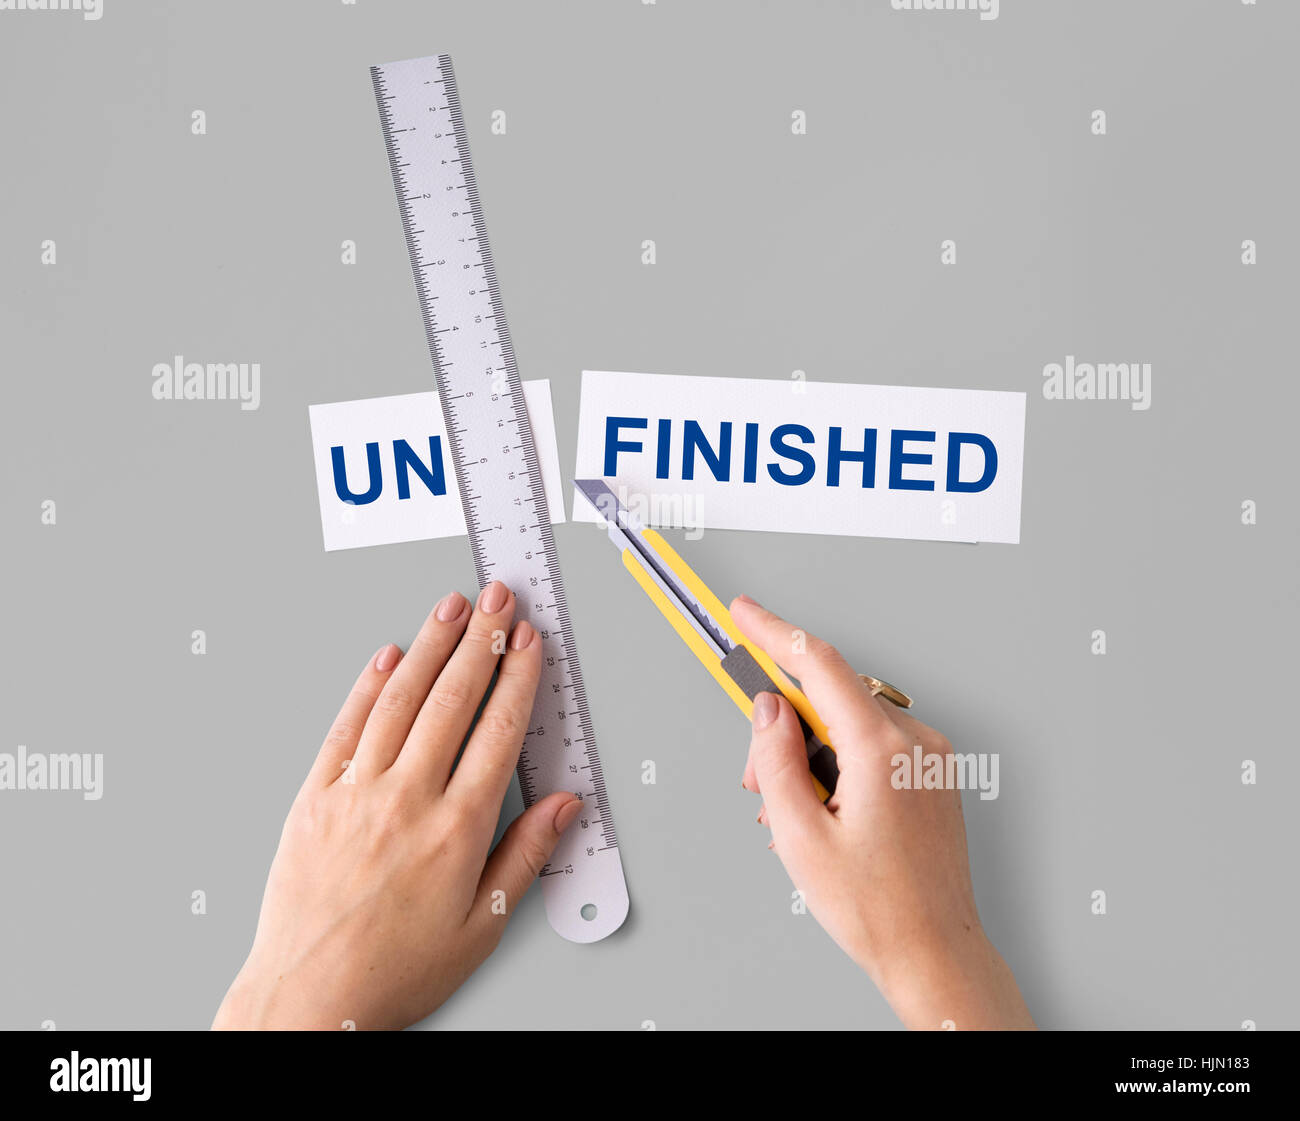 Unfinished Incomplete Hand Cut Word Split Concept - Stock Image